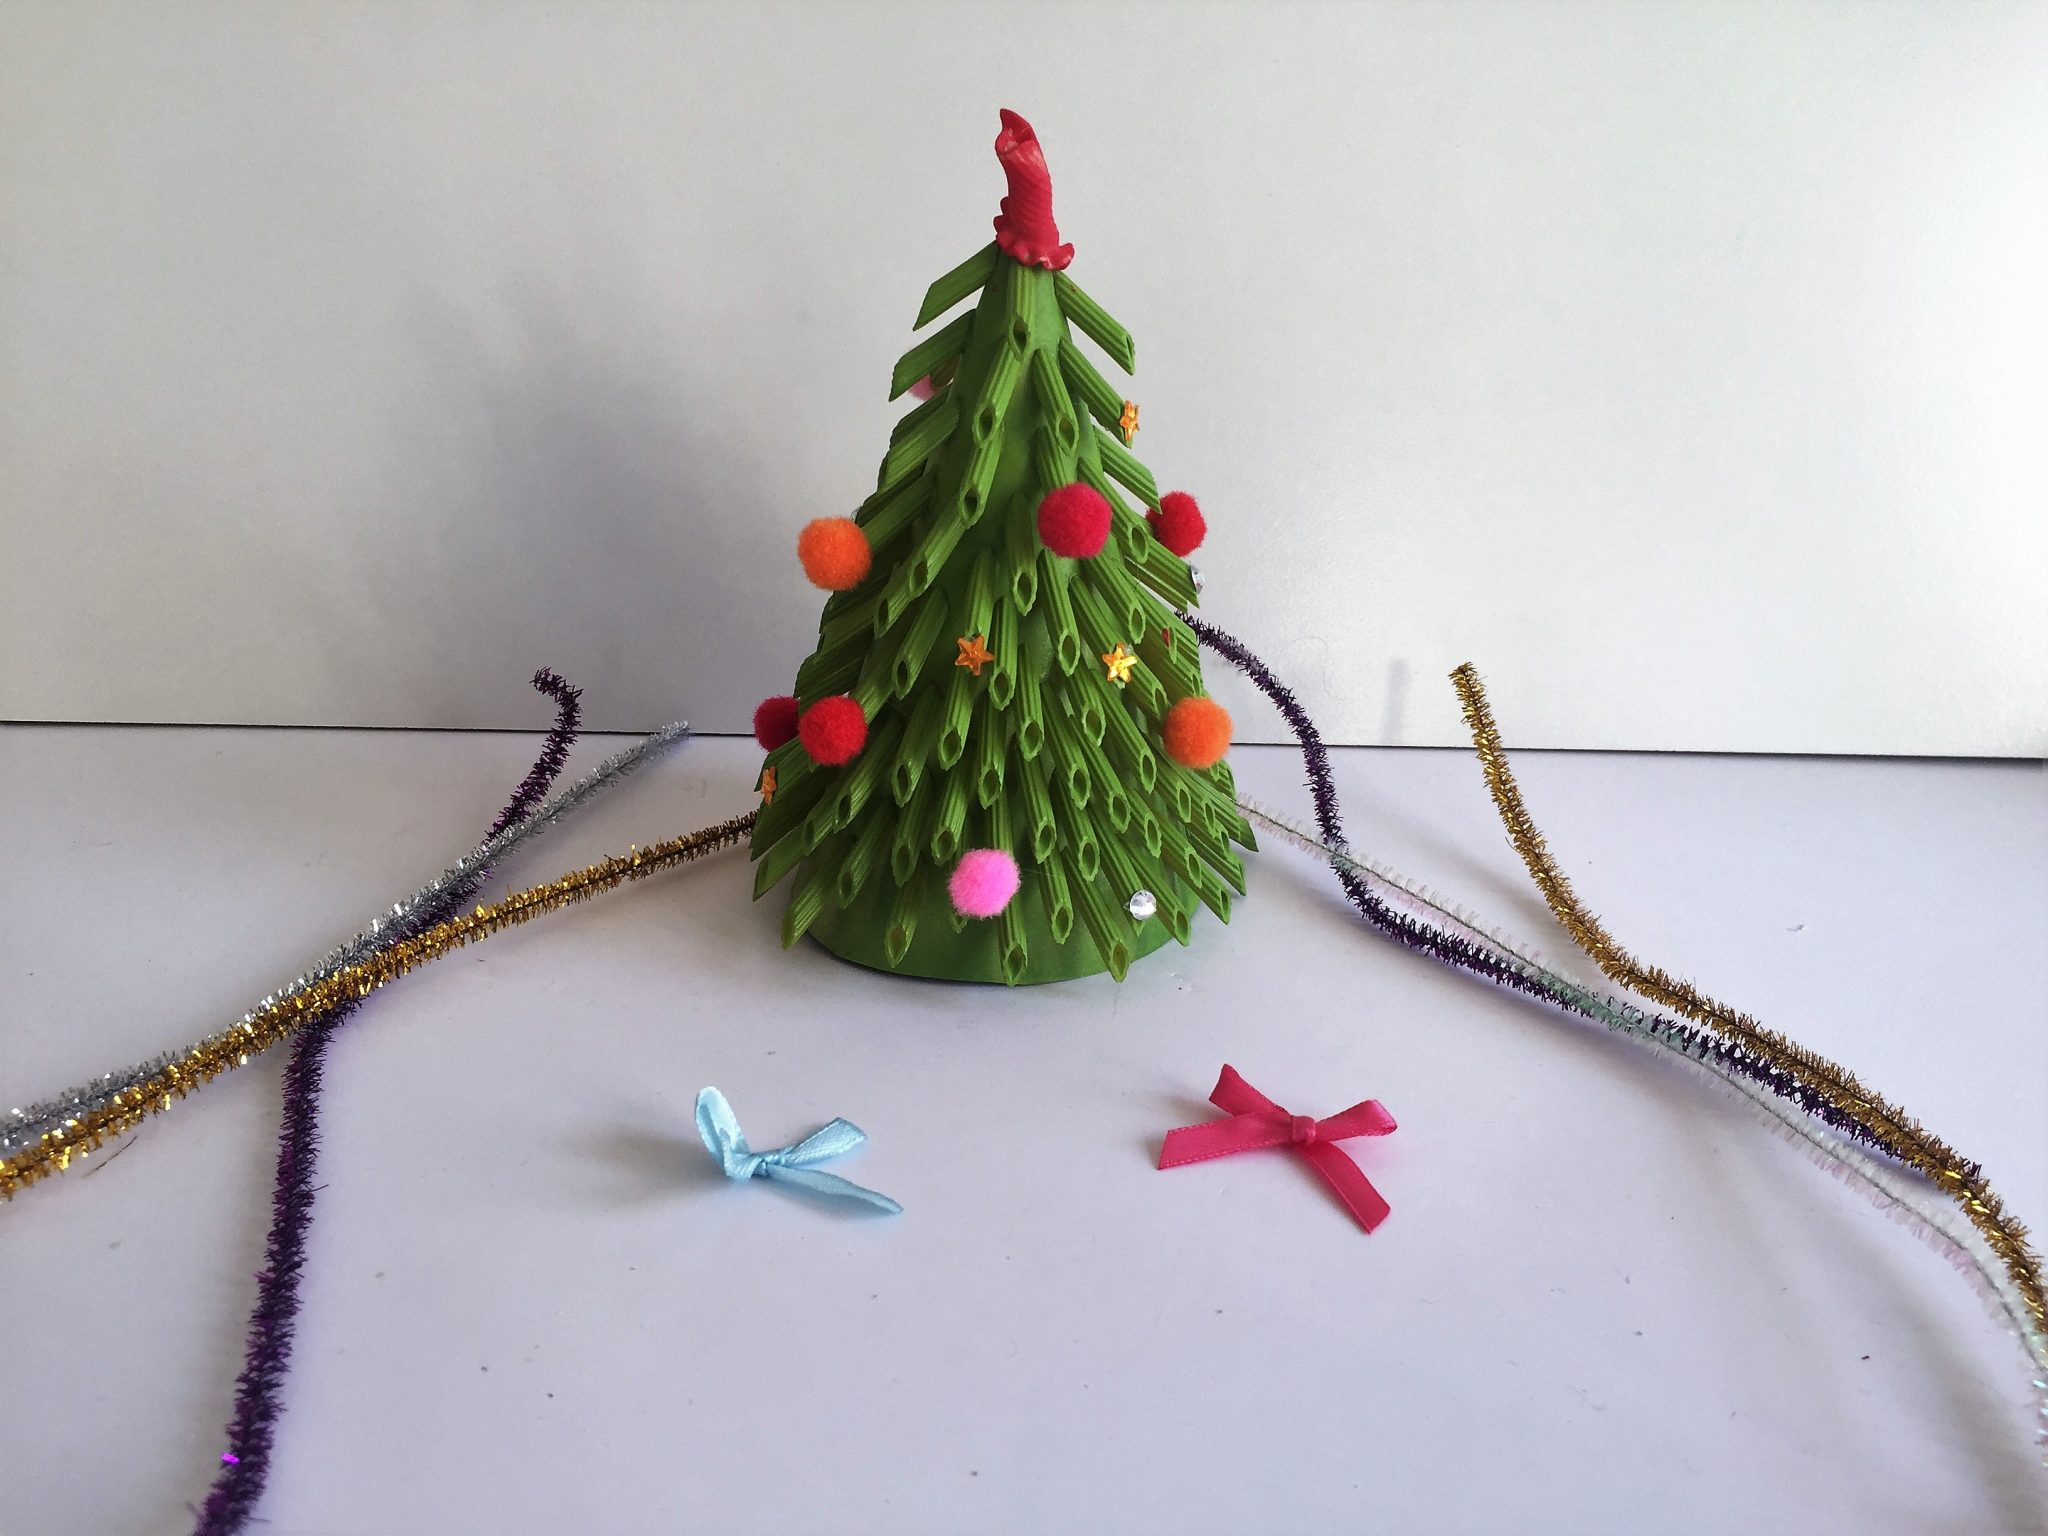 Christmas Tree crafts - Pasta crafts model